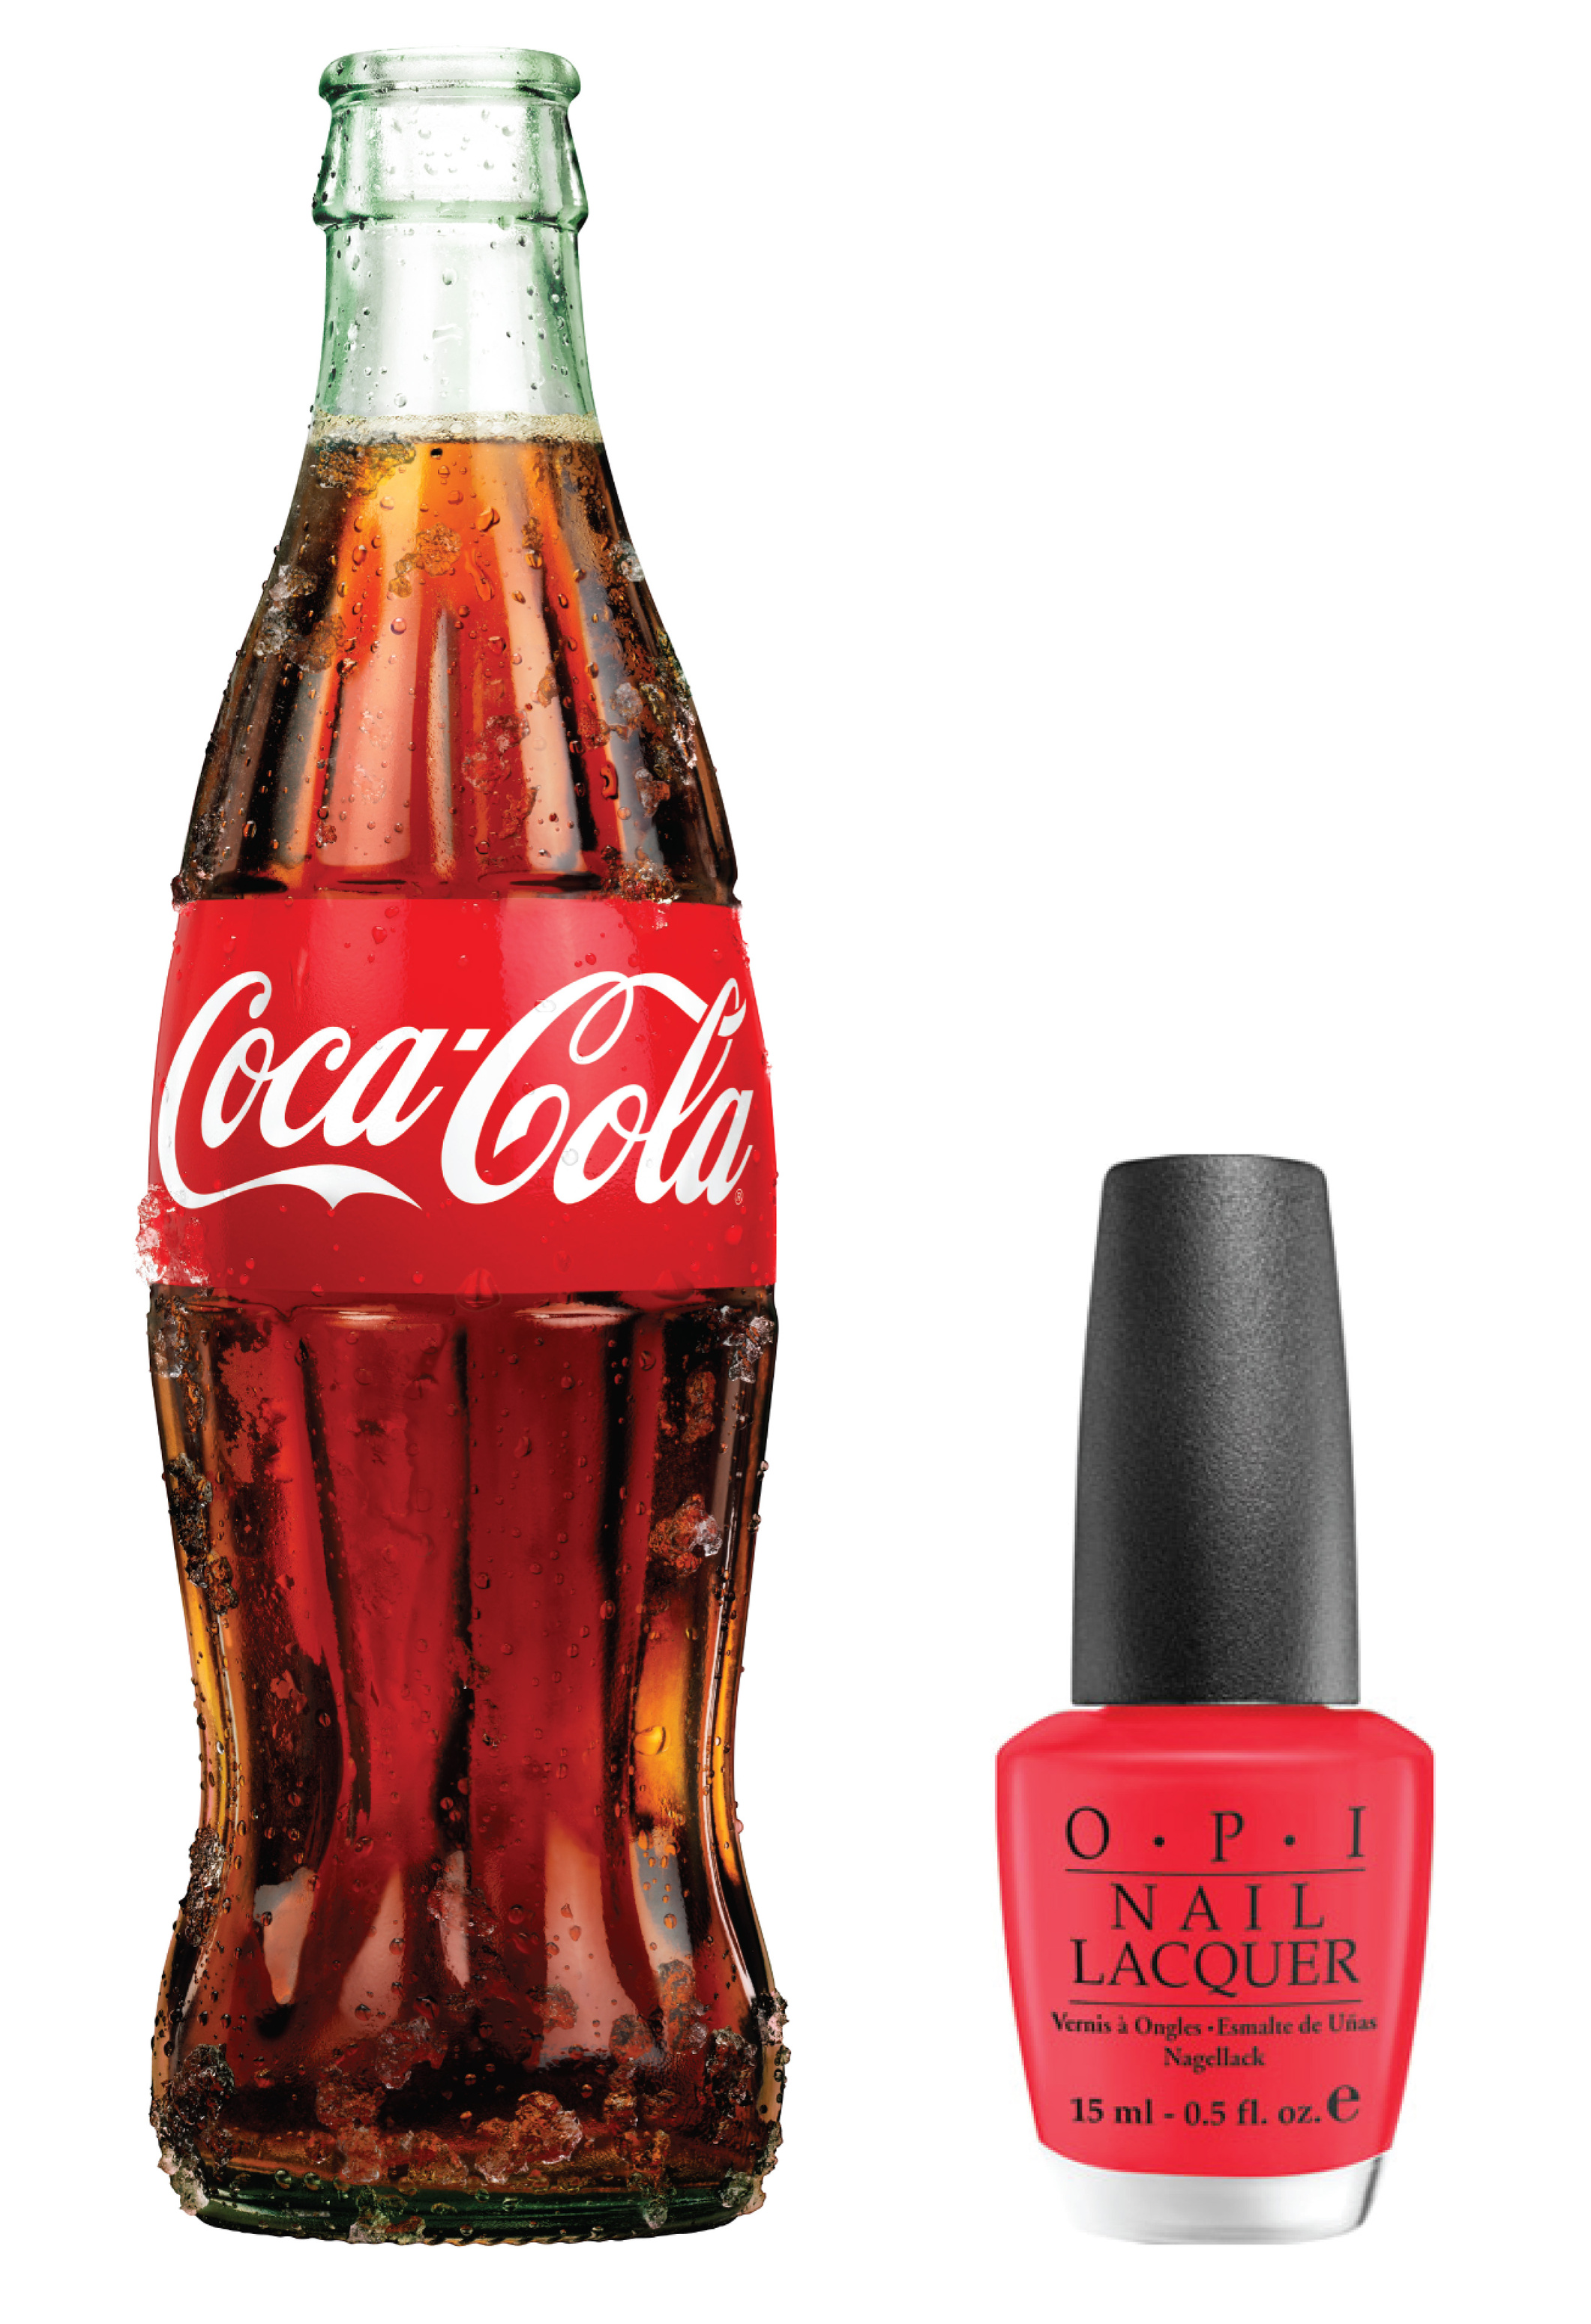 The Coca-Cola Company On Nail Lacquer Launch - Mom Blog Society